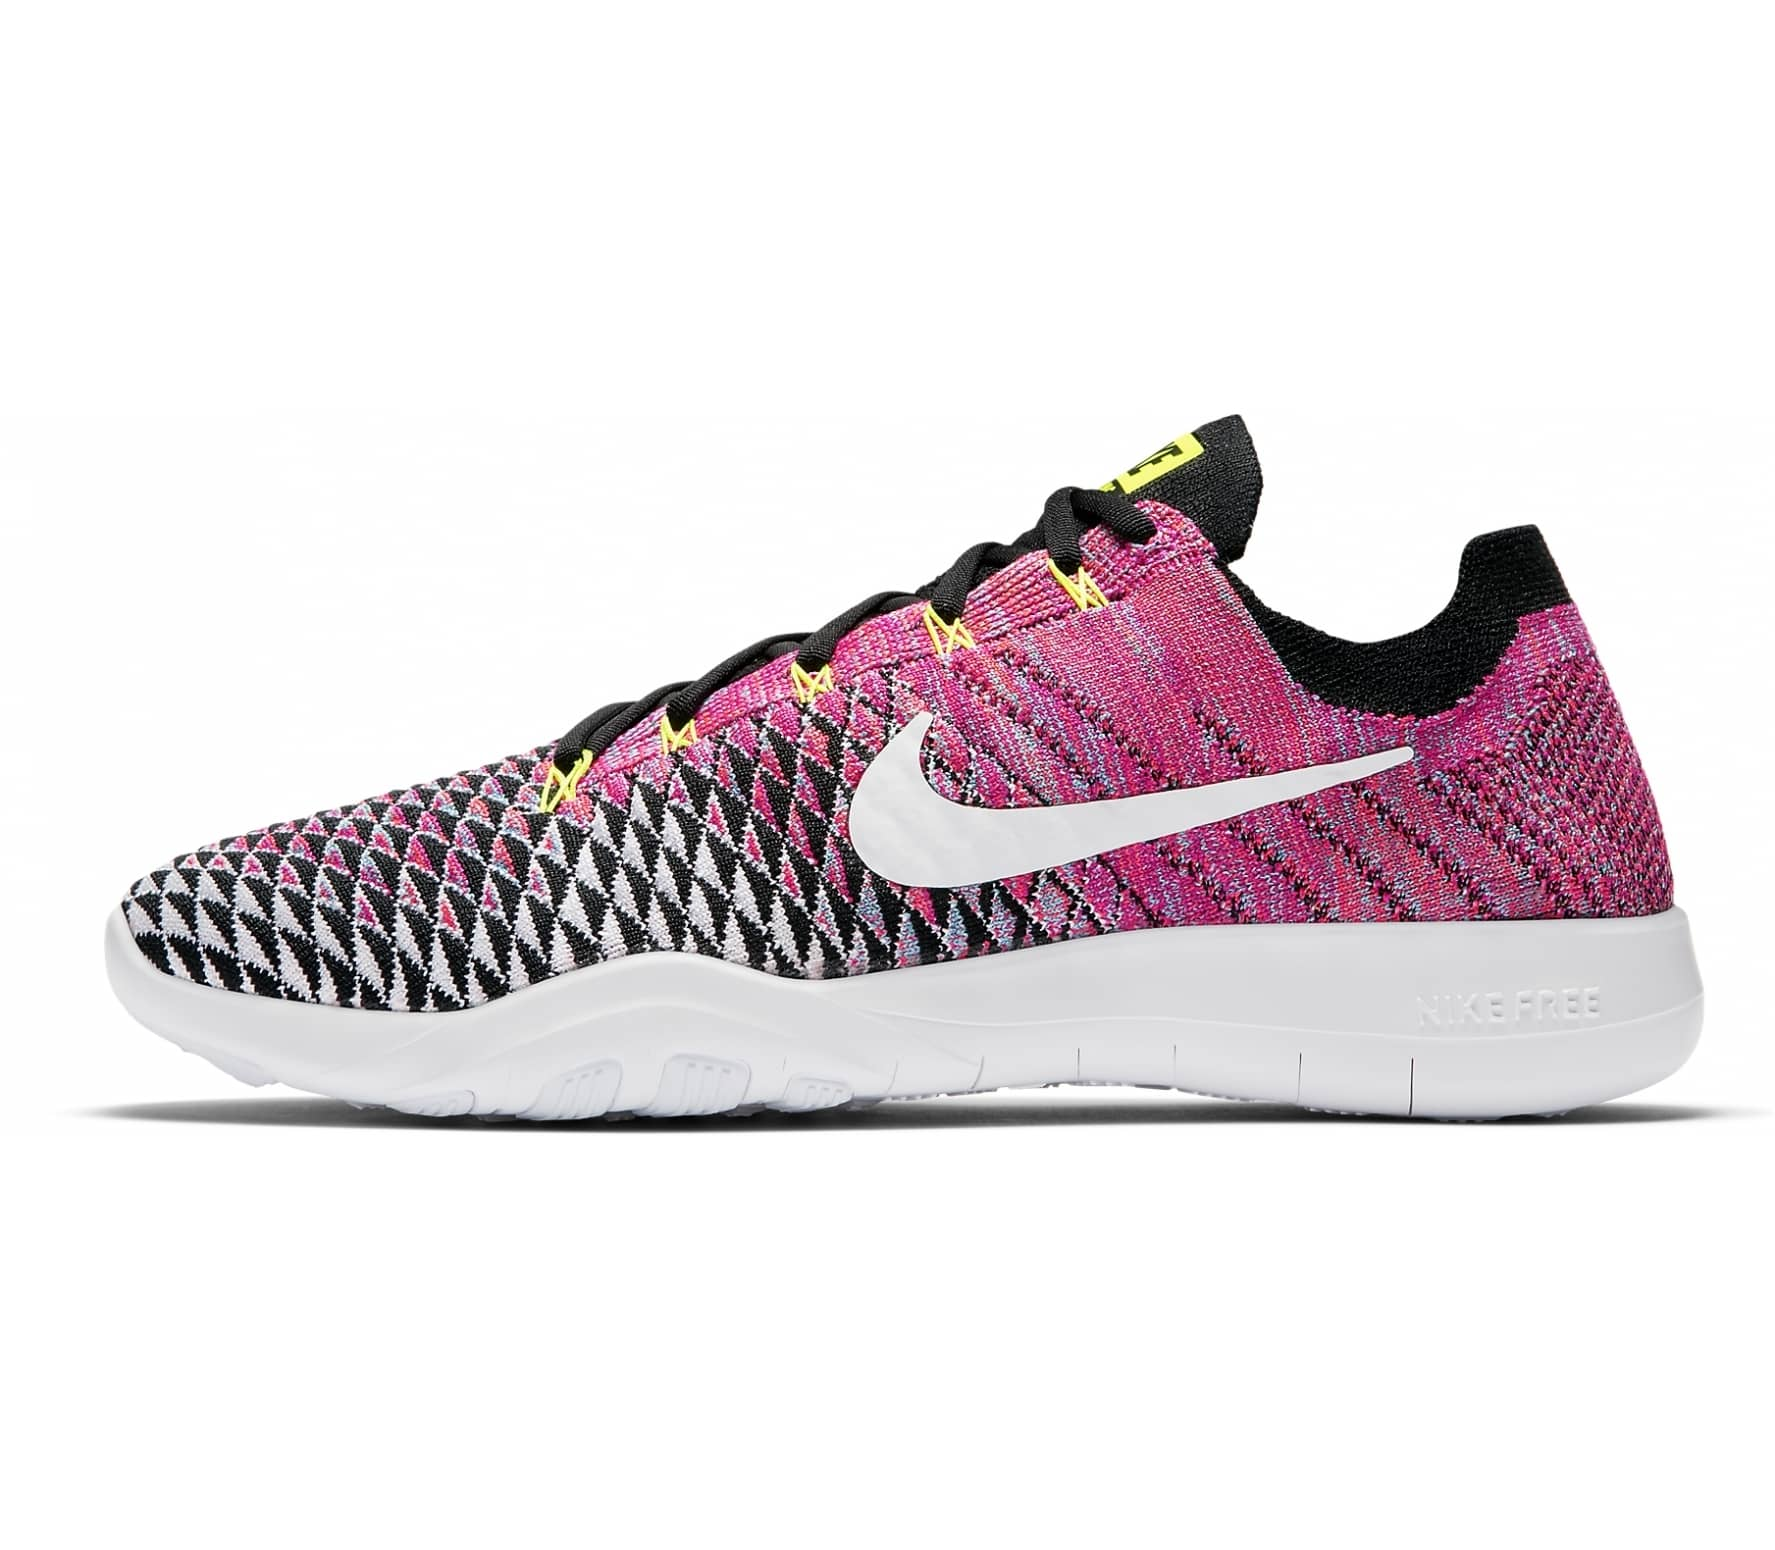 535dbdaa5ce61 Nike - Free TR Flyknit 2 women  s training shoes (pink black) - buy ...